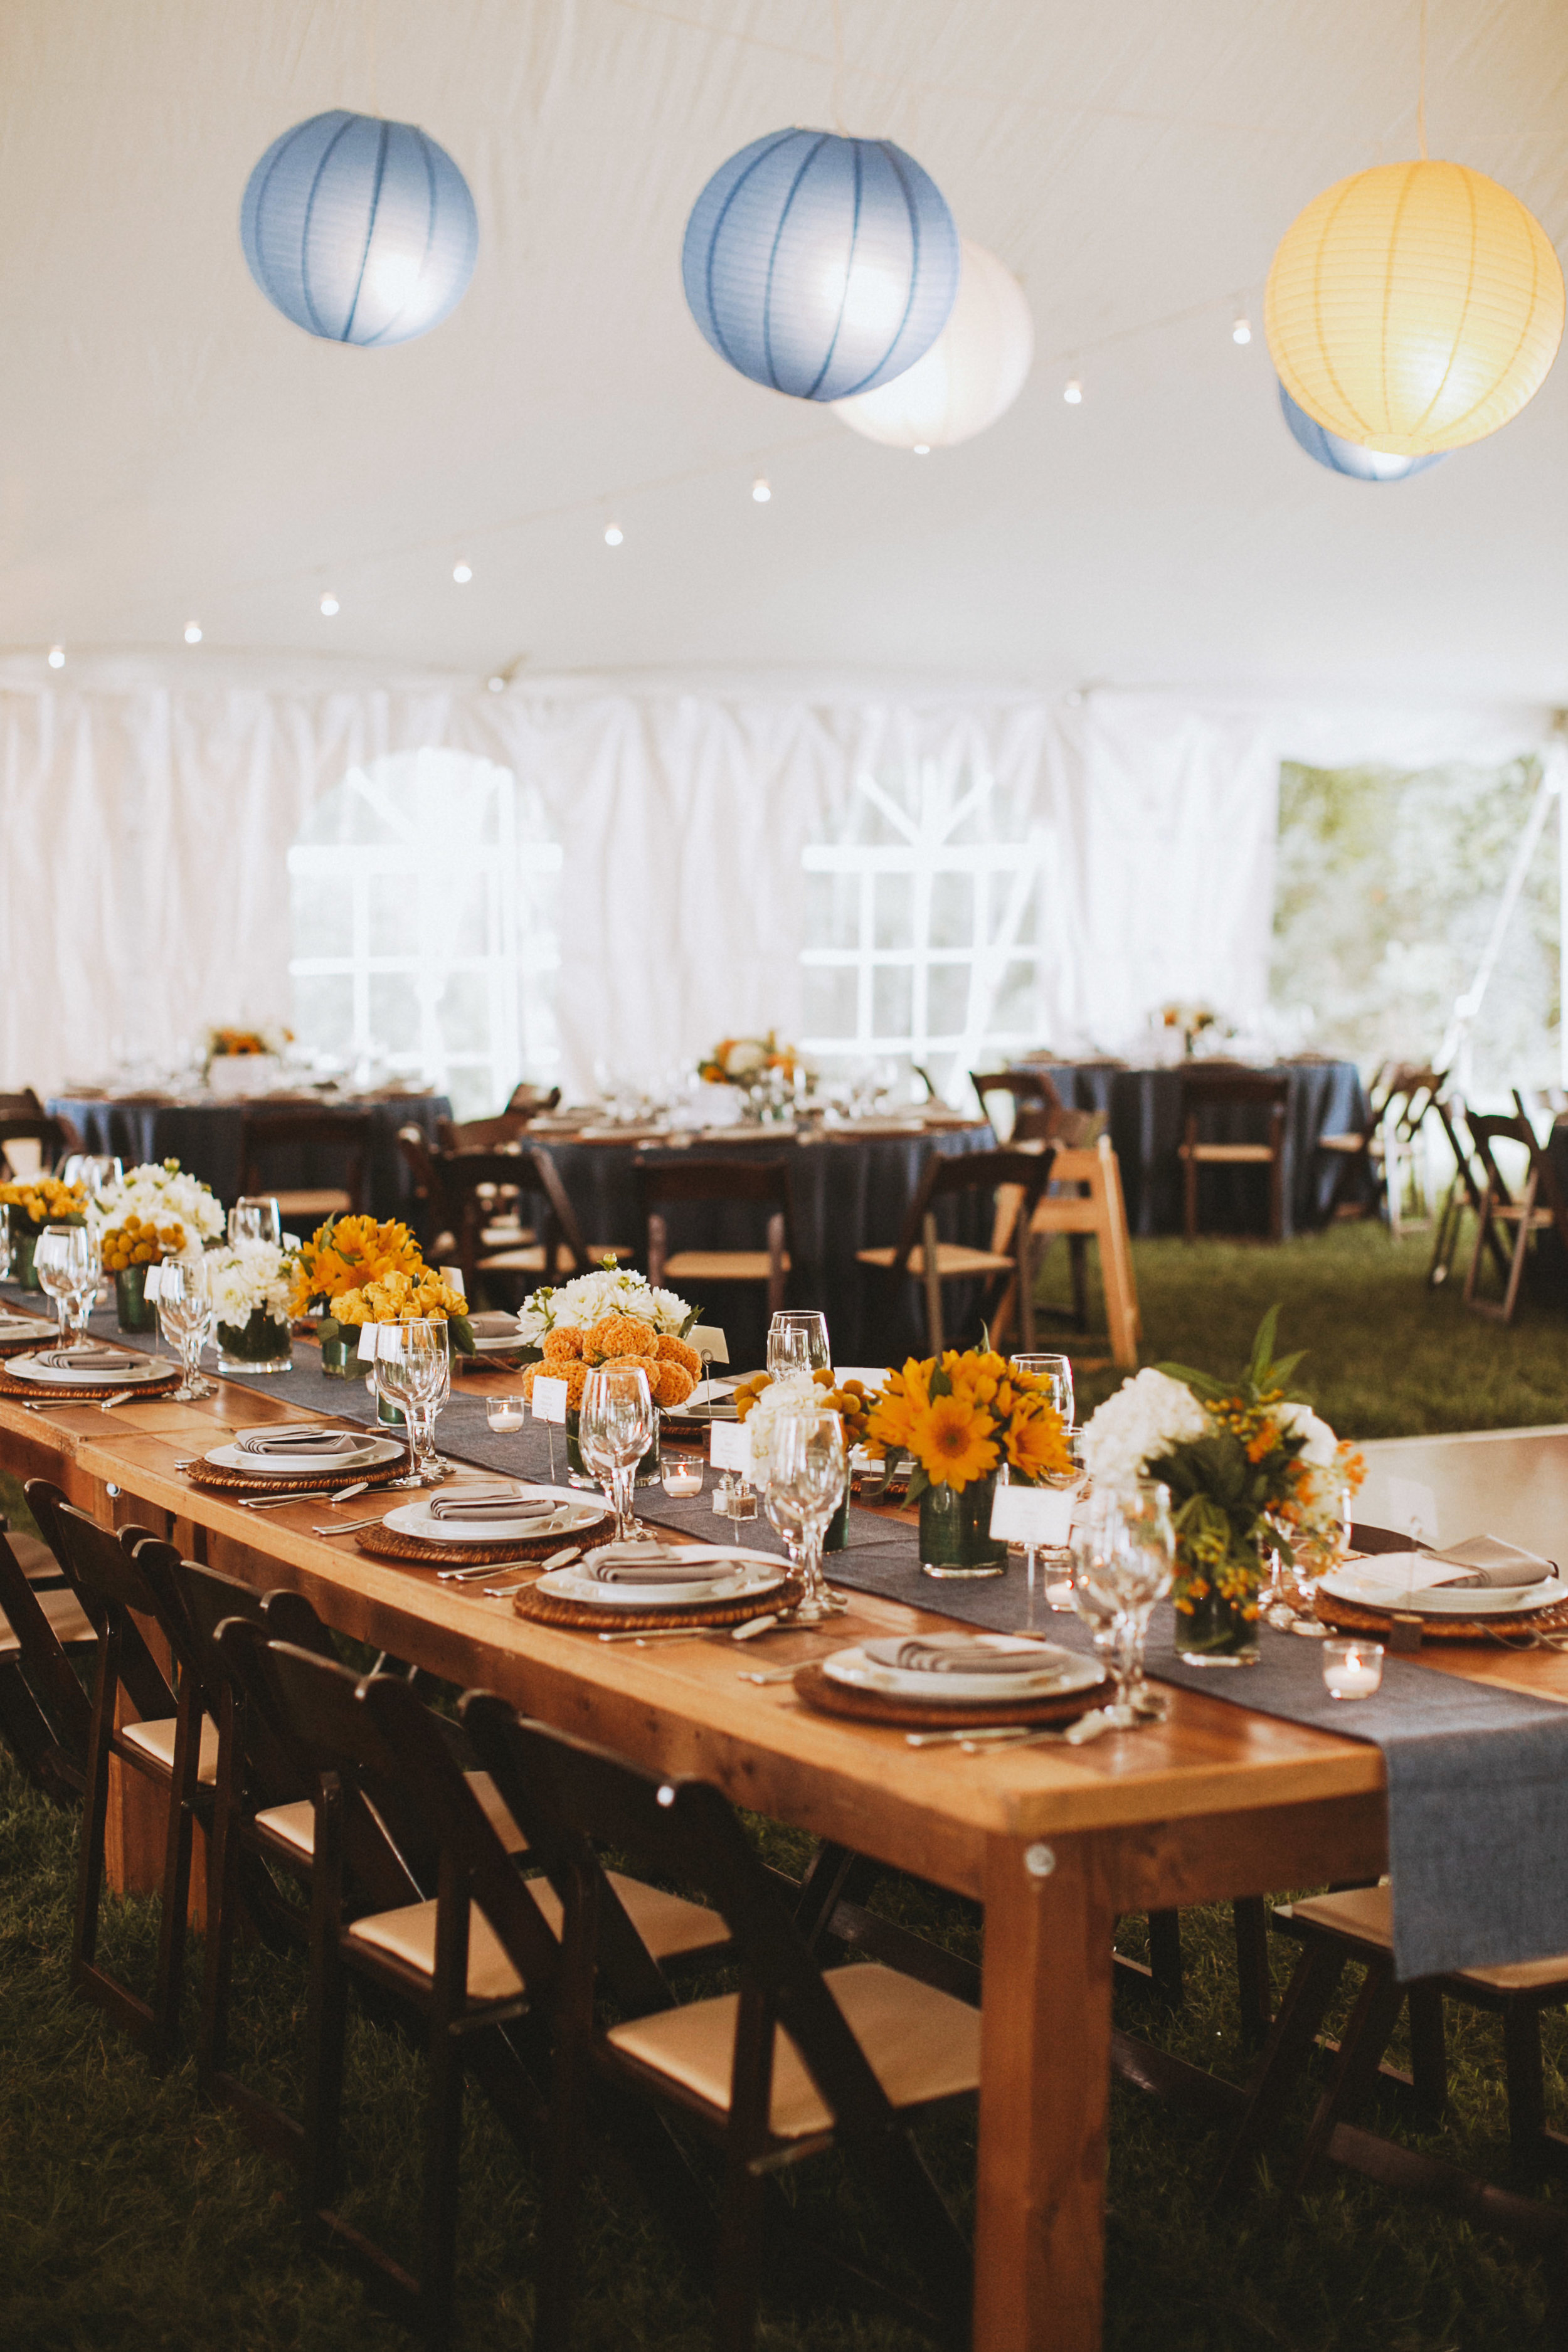 sunflowers and paper lanterns at a tented wedding